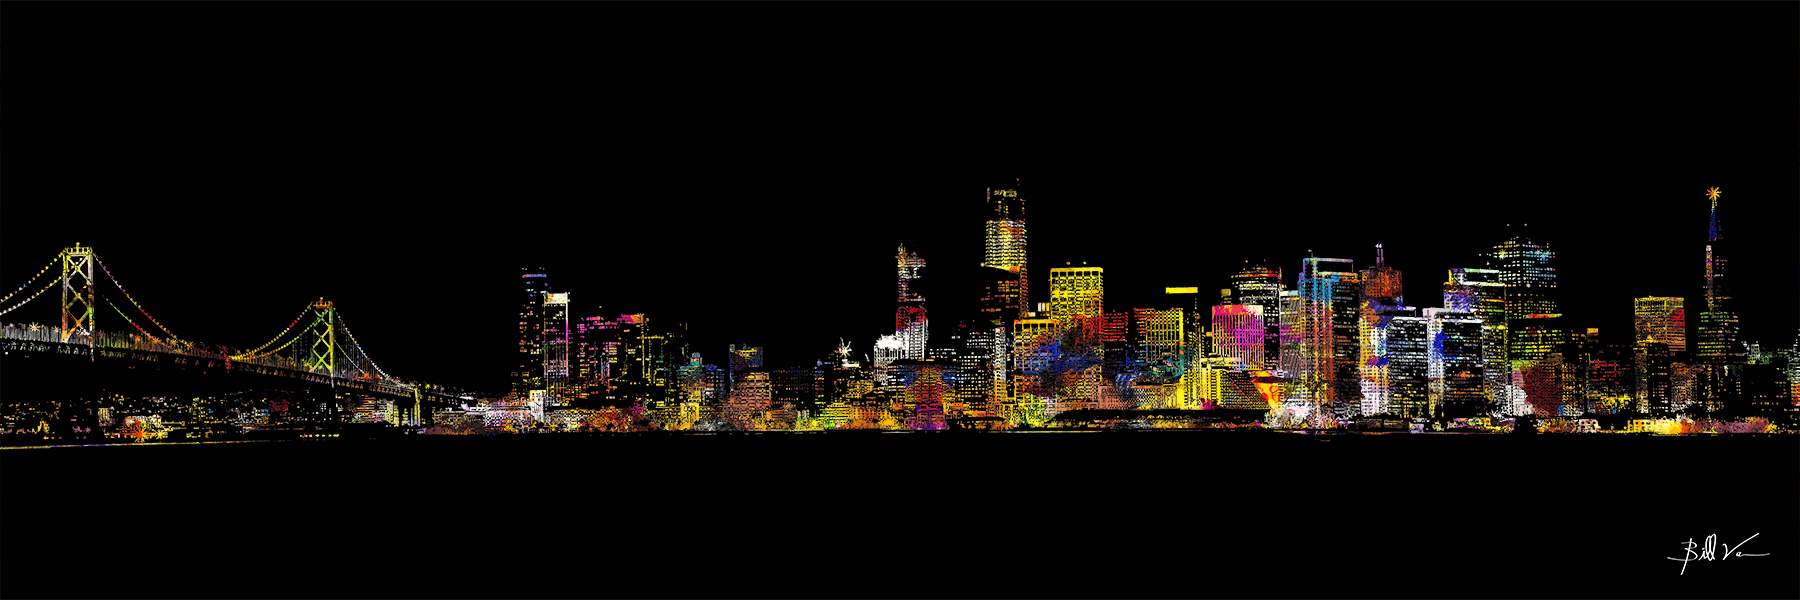 San Francisco Skyline 16 x 48